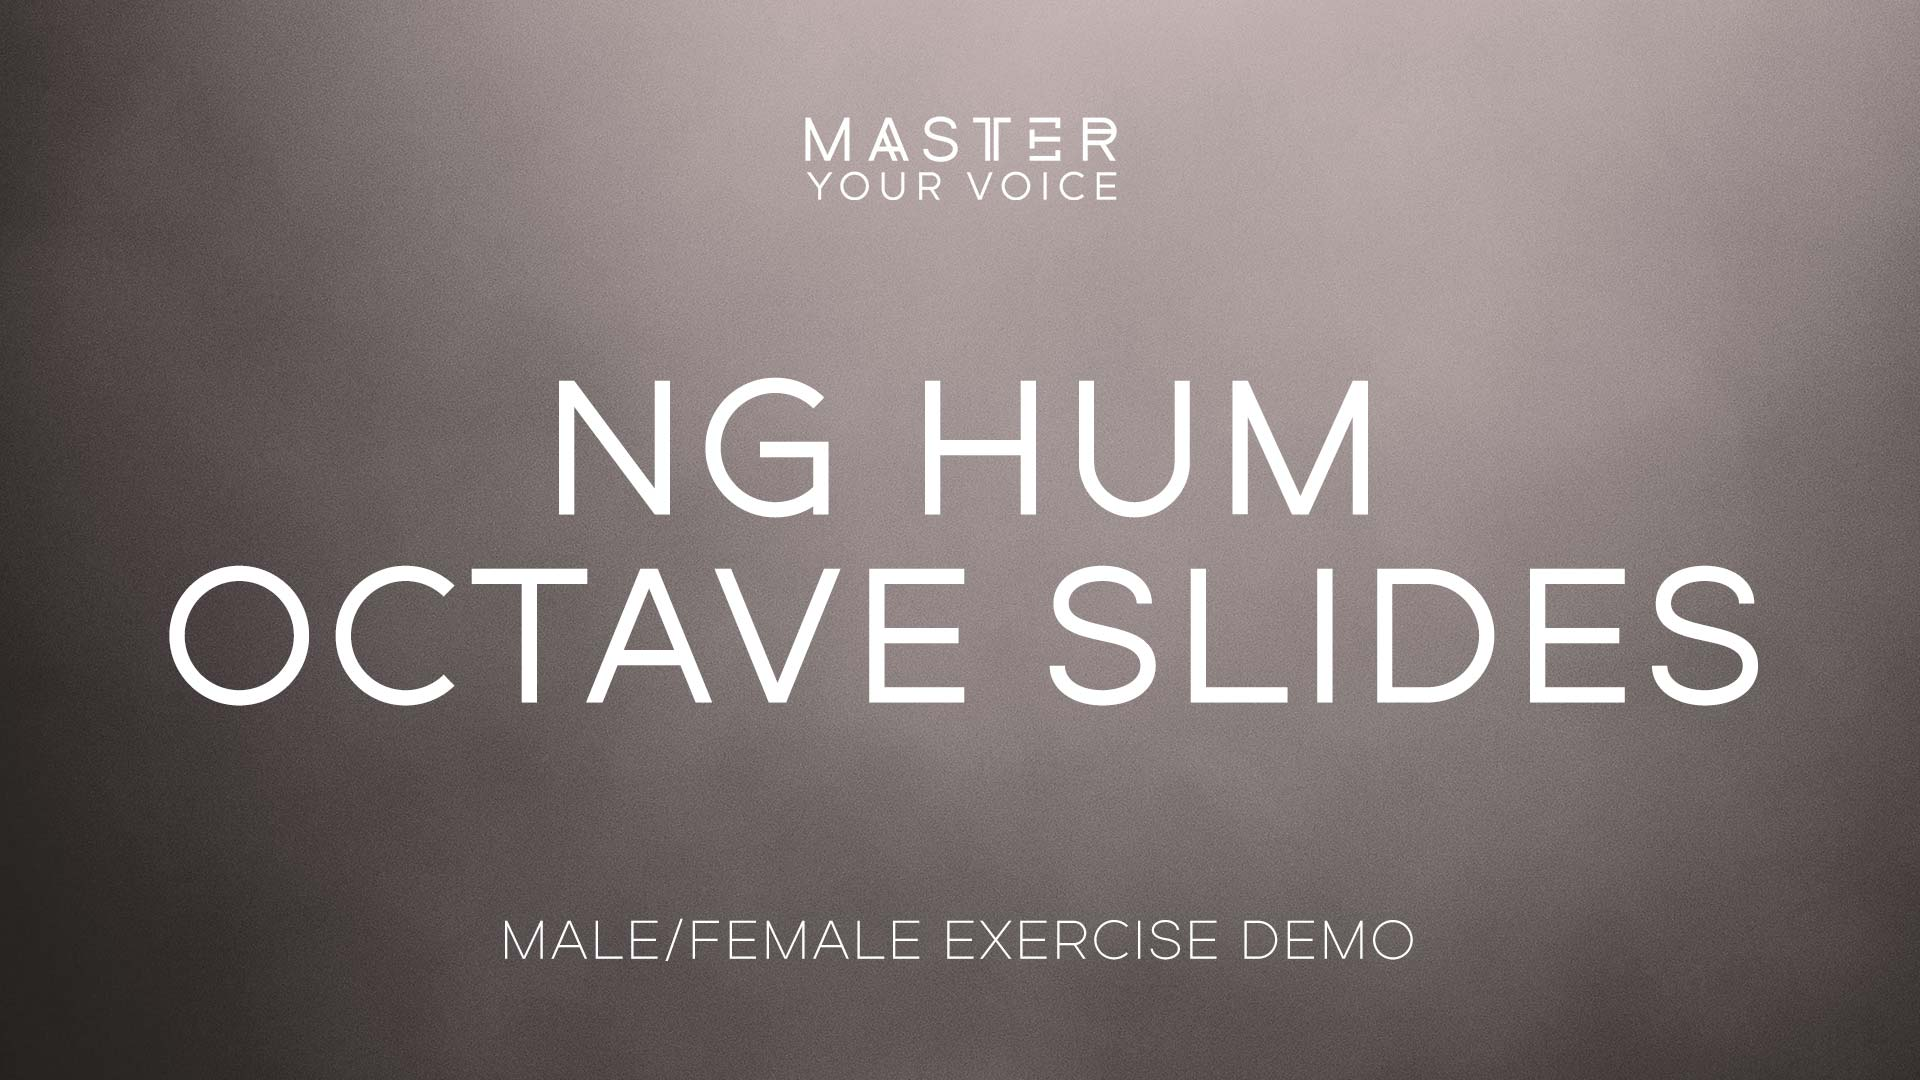 Ng Hum Octave Slides Exercise Demo